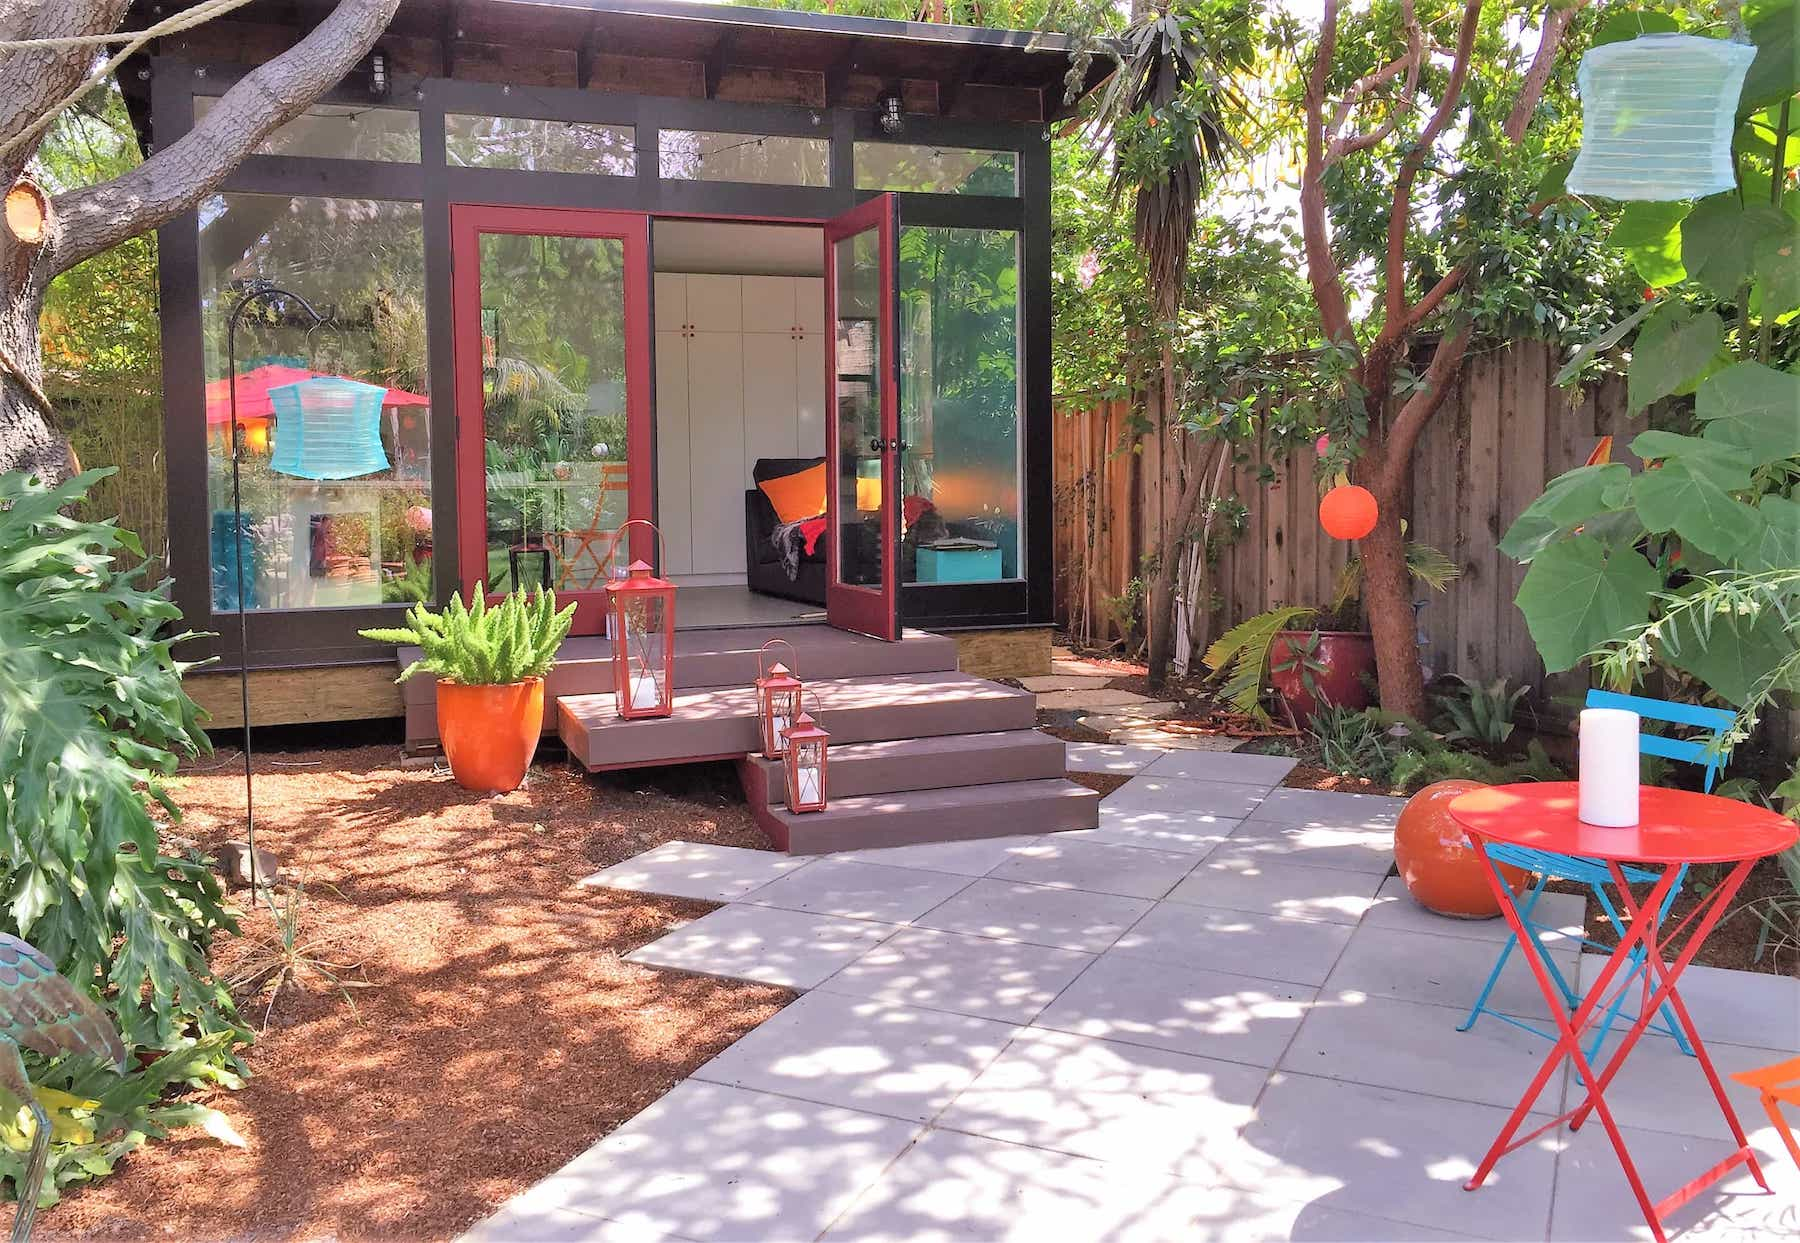 Studio Shed - The Perfect Studio in Backyard Solution